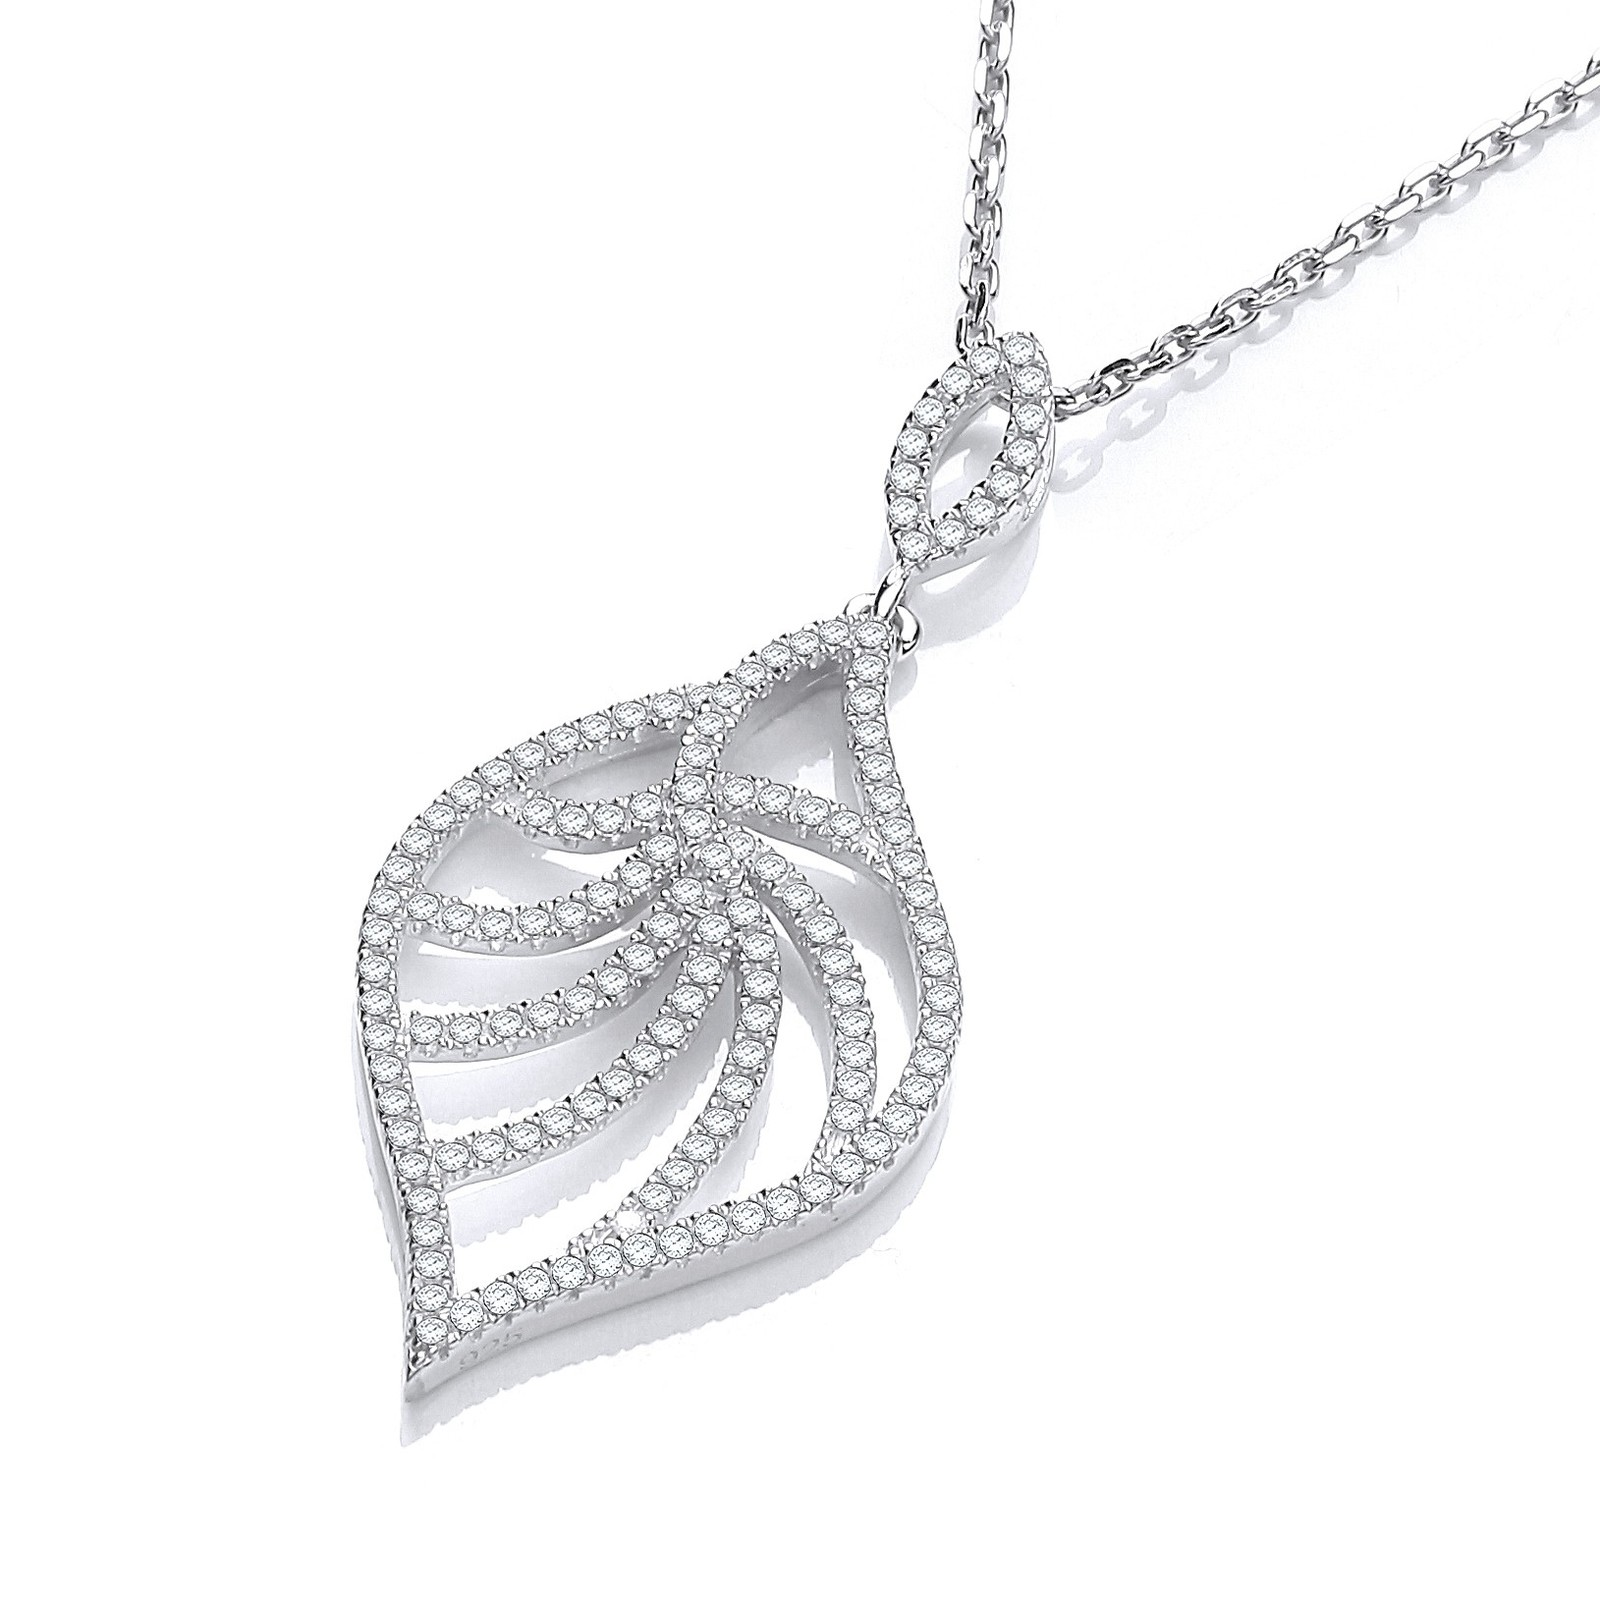 "Micro Pave' Leaf Shape Cz Pendant with 18"" Chain"